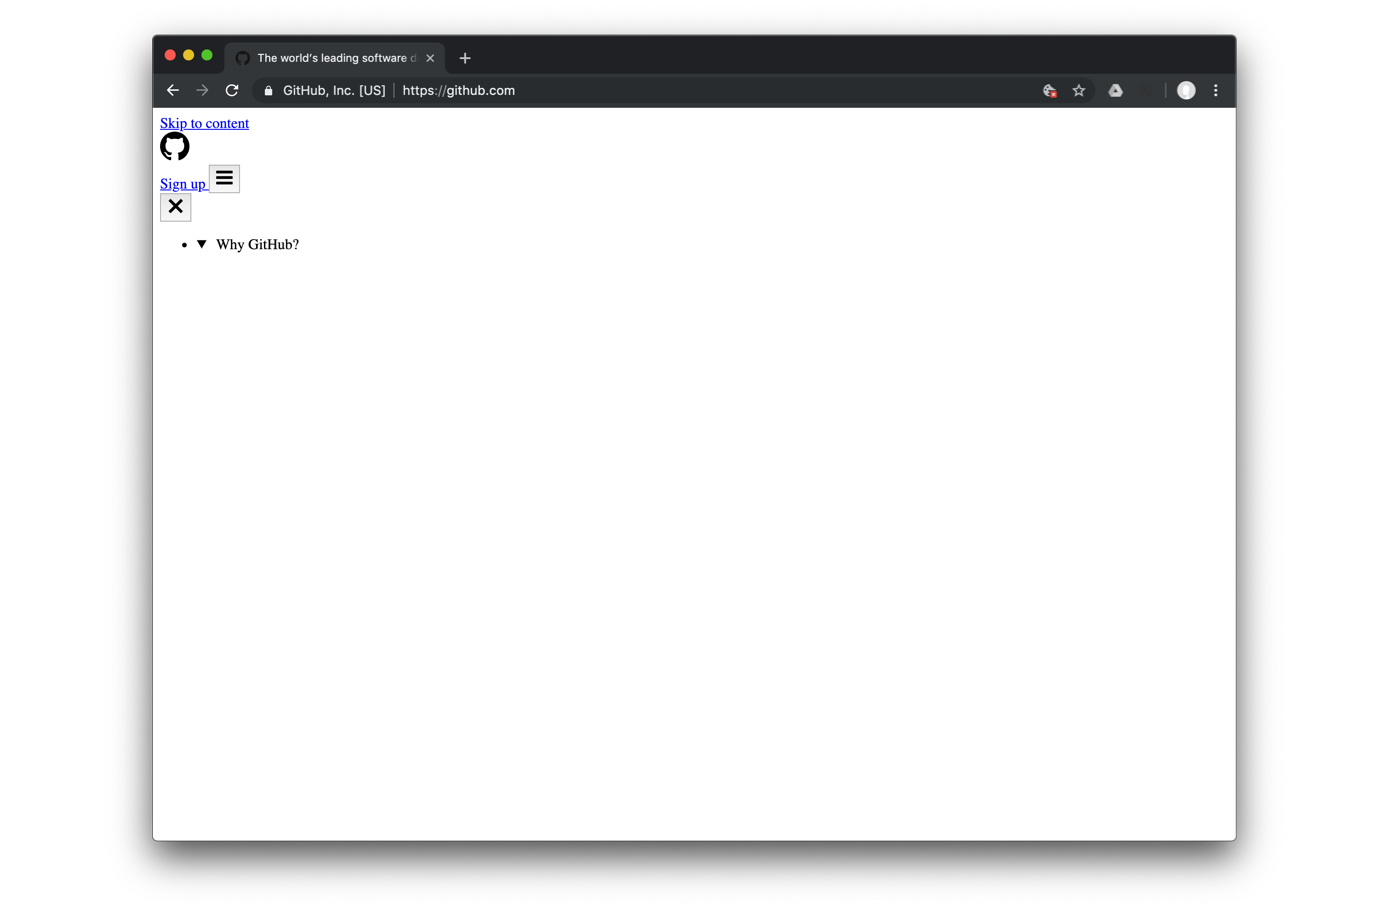 Wide gap after Why GitHub? dropdown